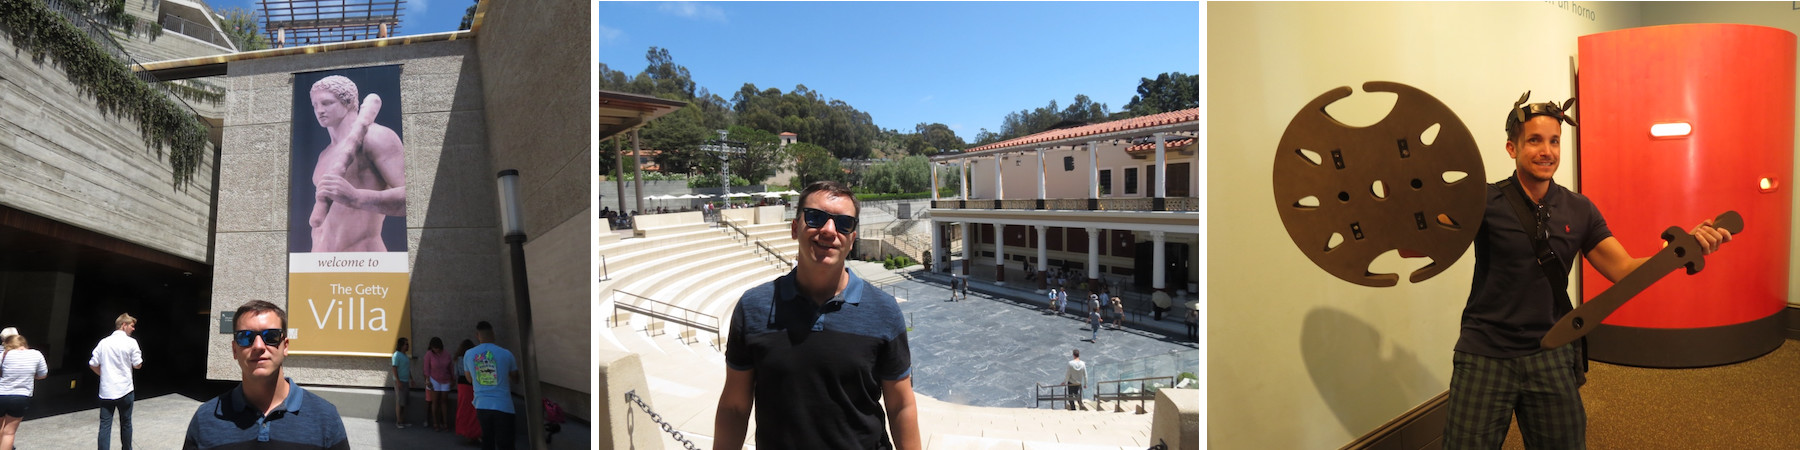 getty villa museu e anfiteatro